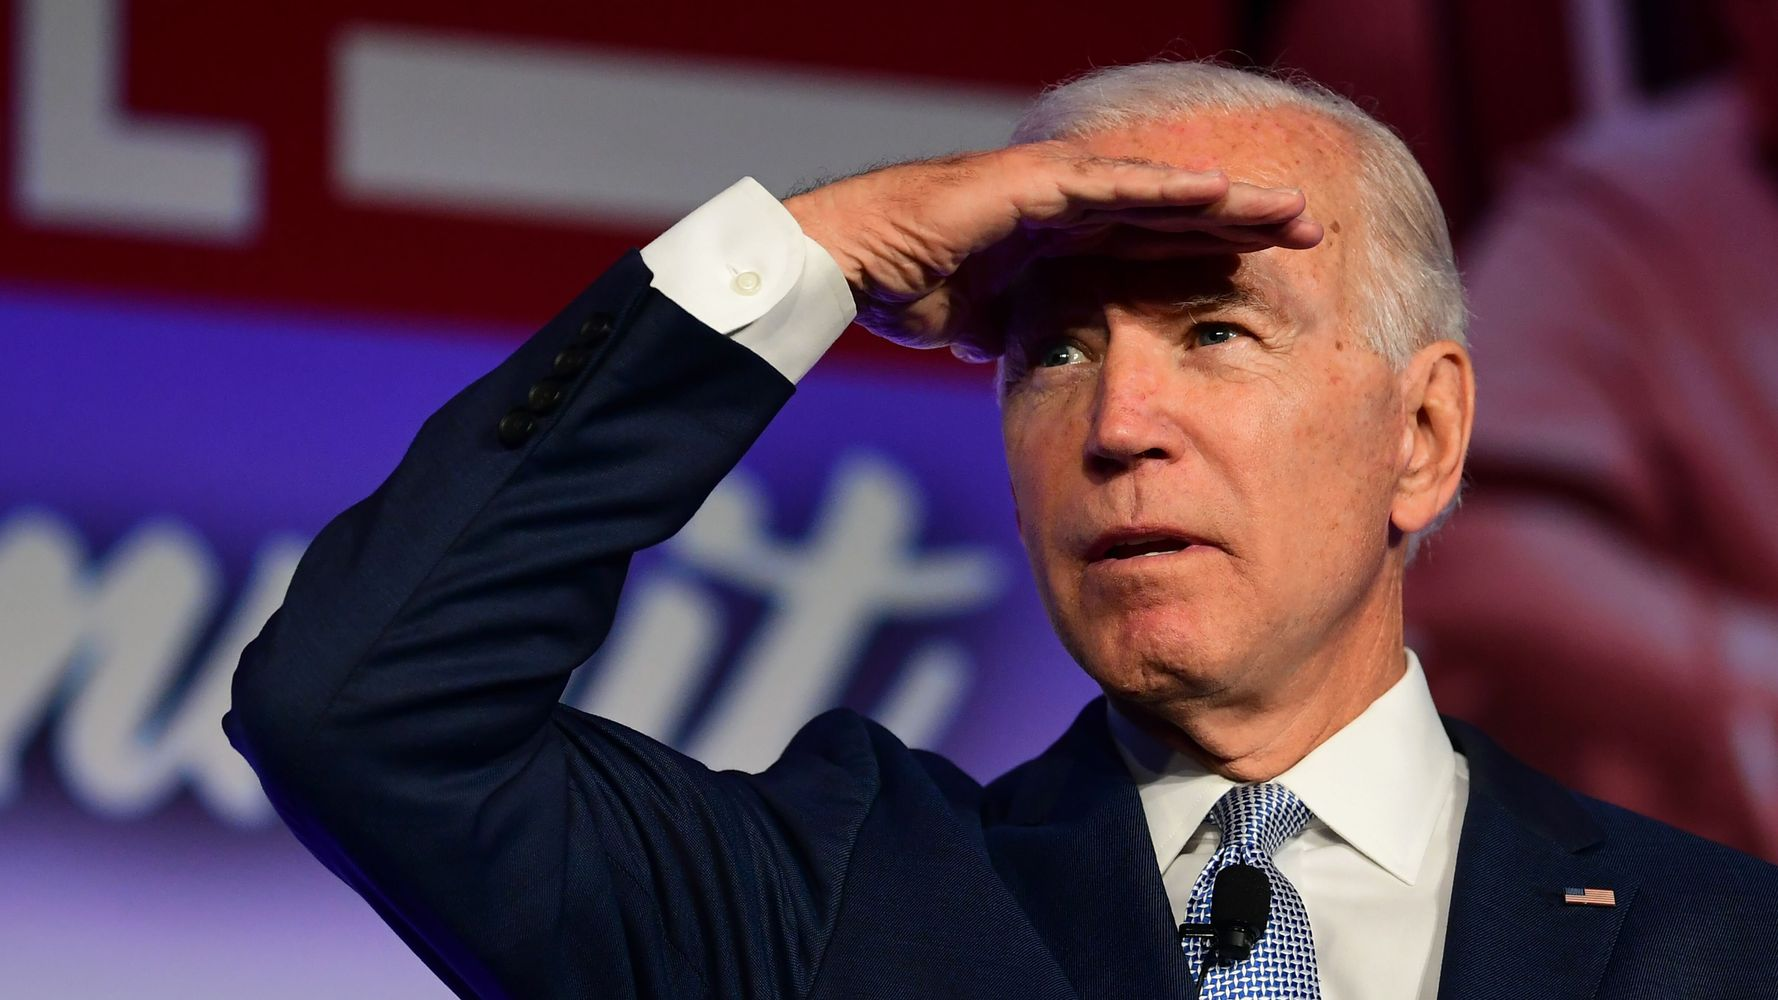 Labor Unions Hope For A Turnaround Under A Joe Biden Presidency